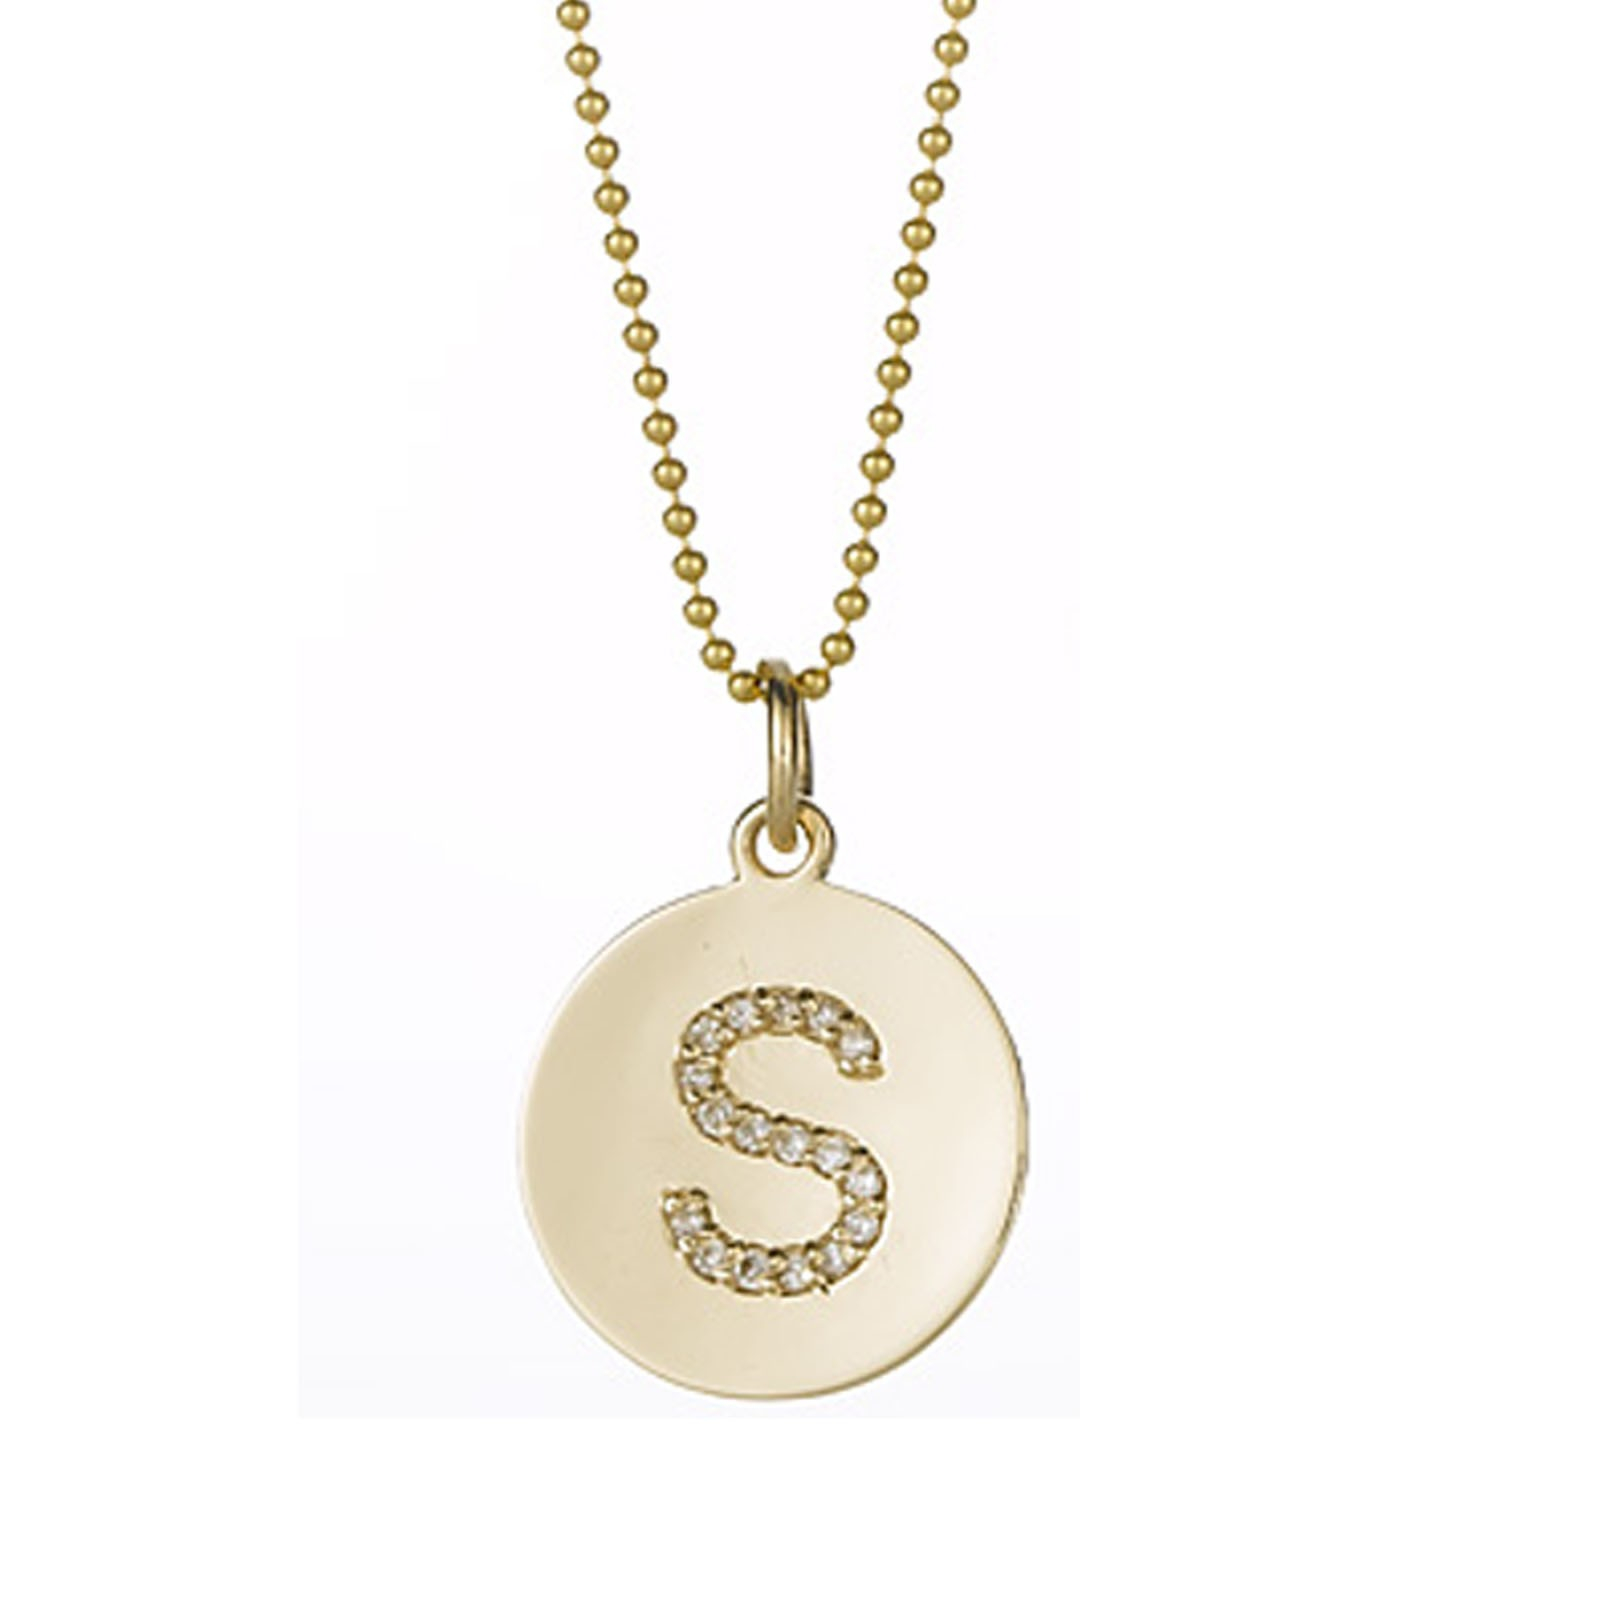 14kt initial pendant necklace in